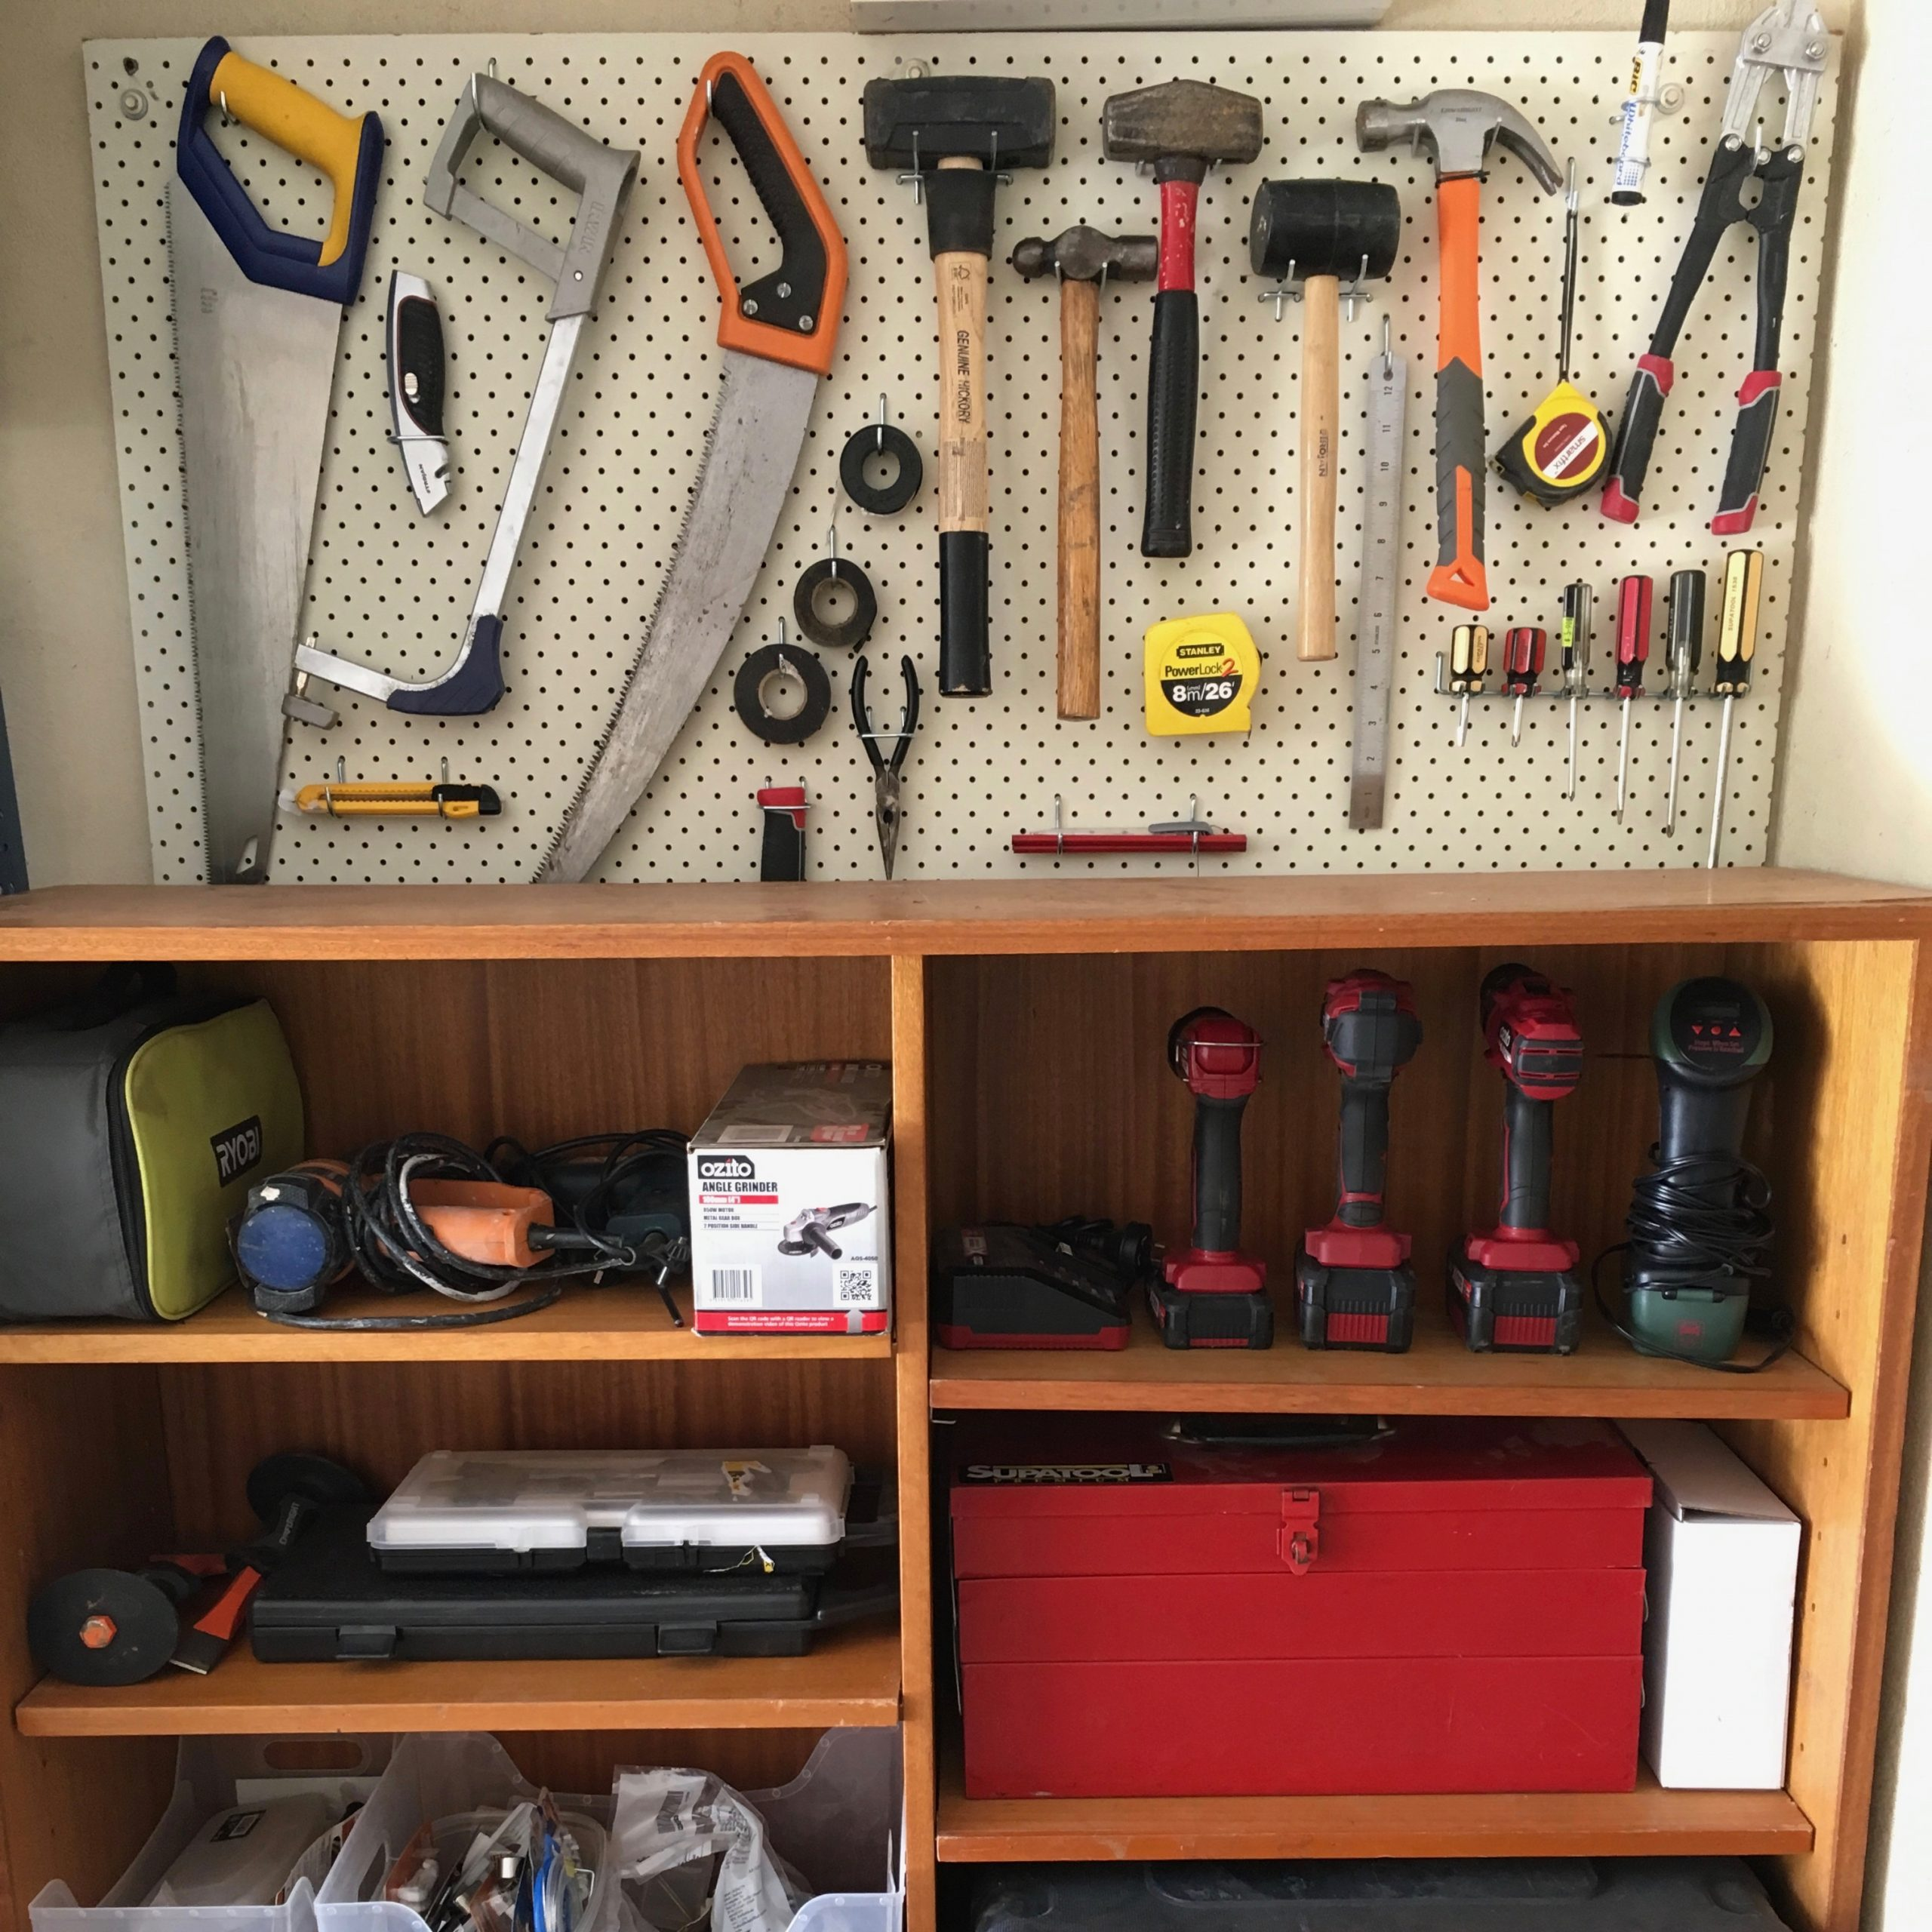 Tools Garage Organisation - The Organising Bee Canberra